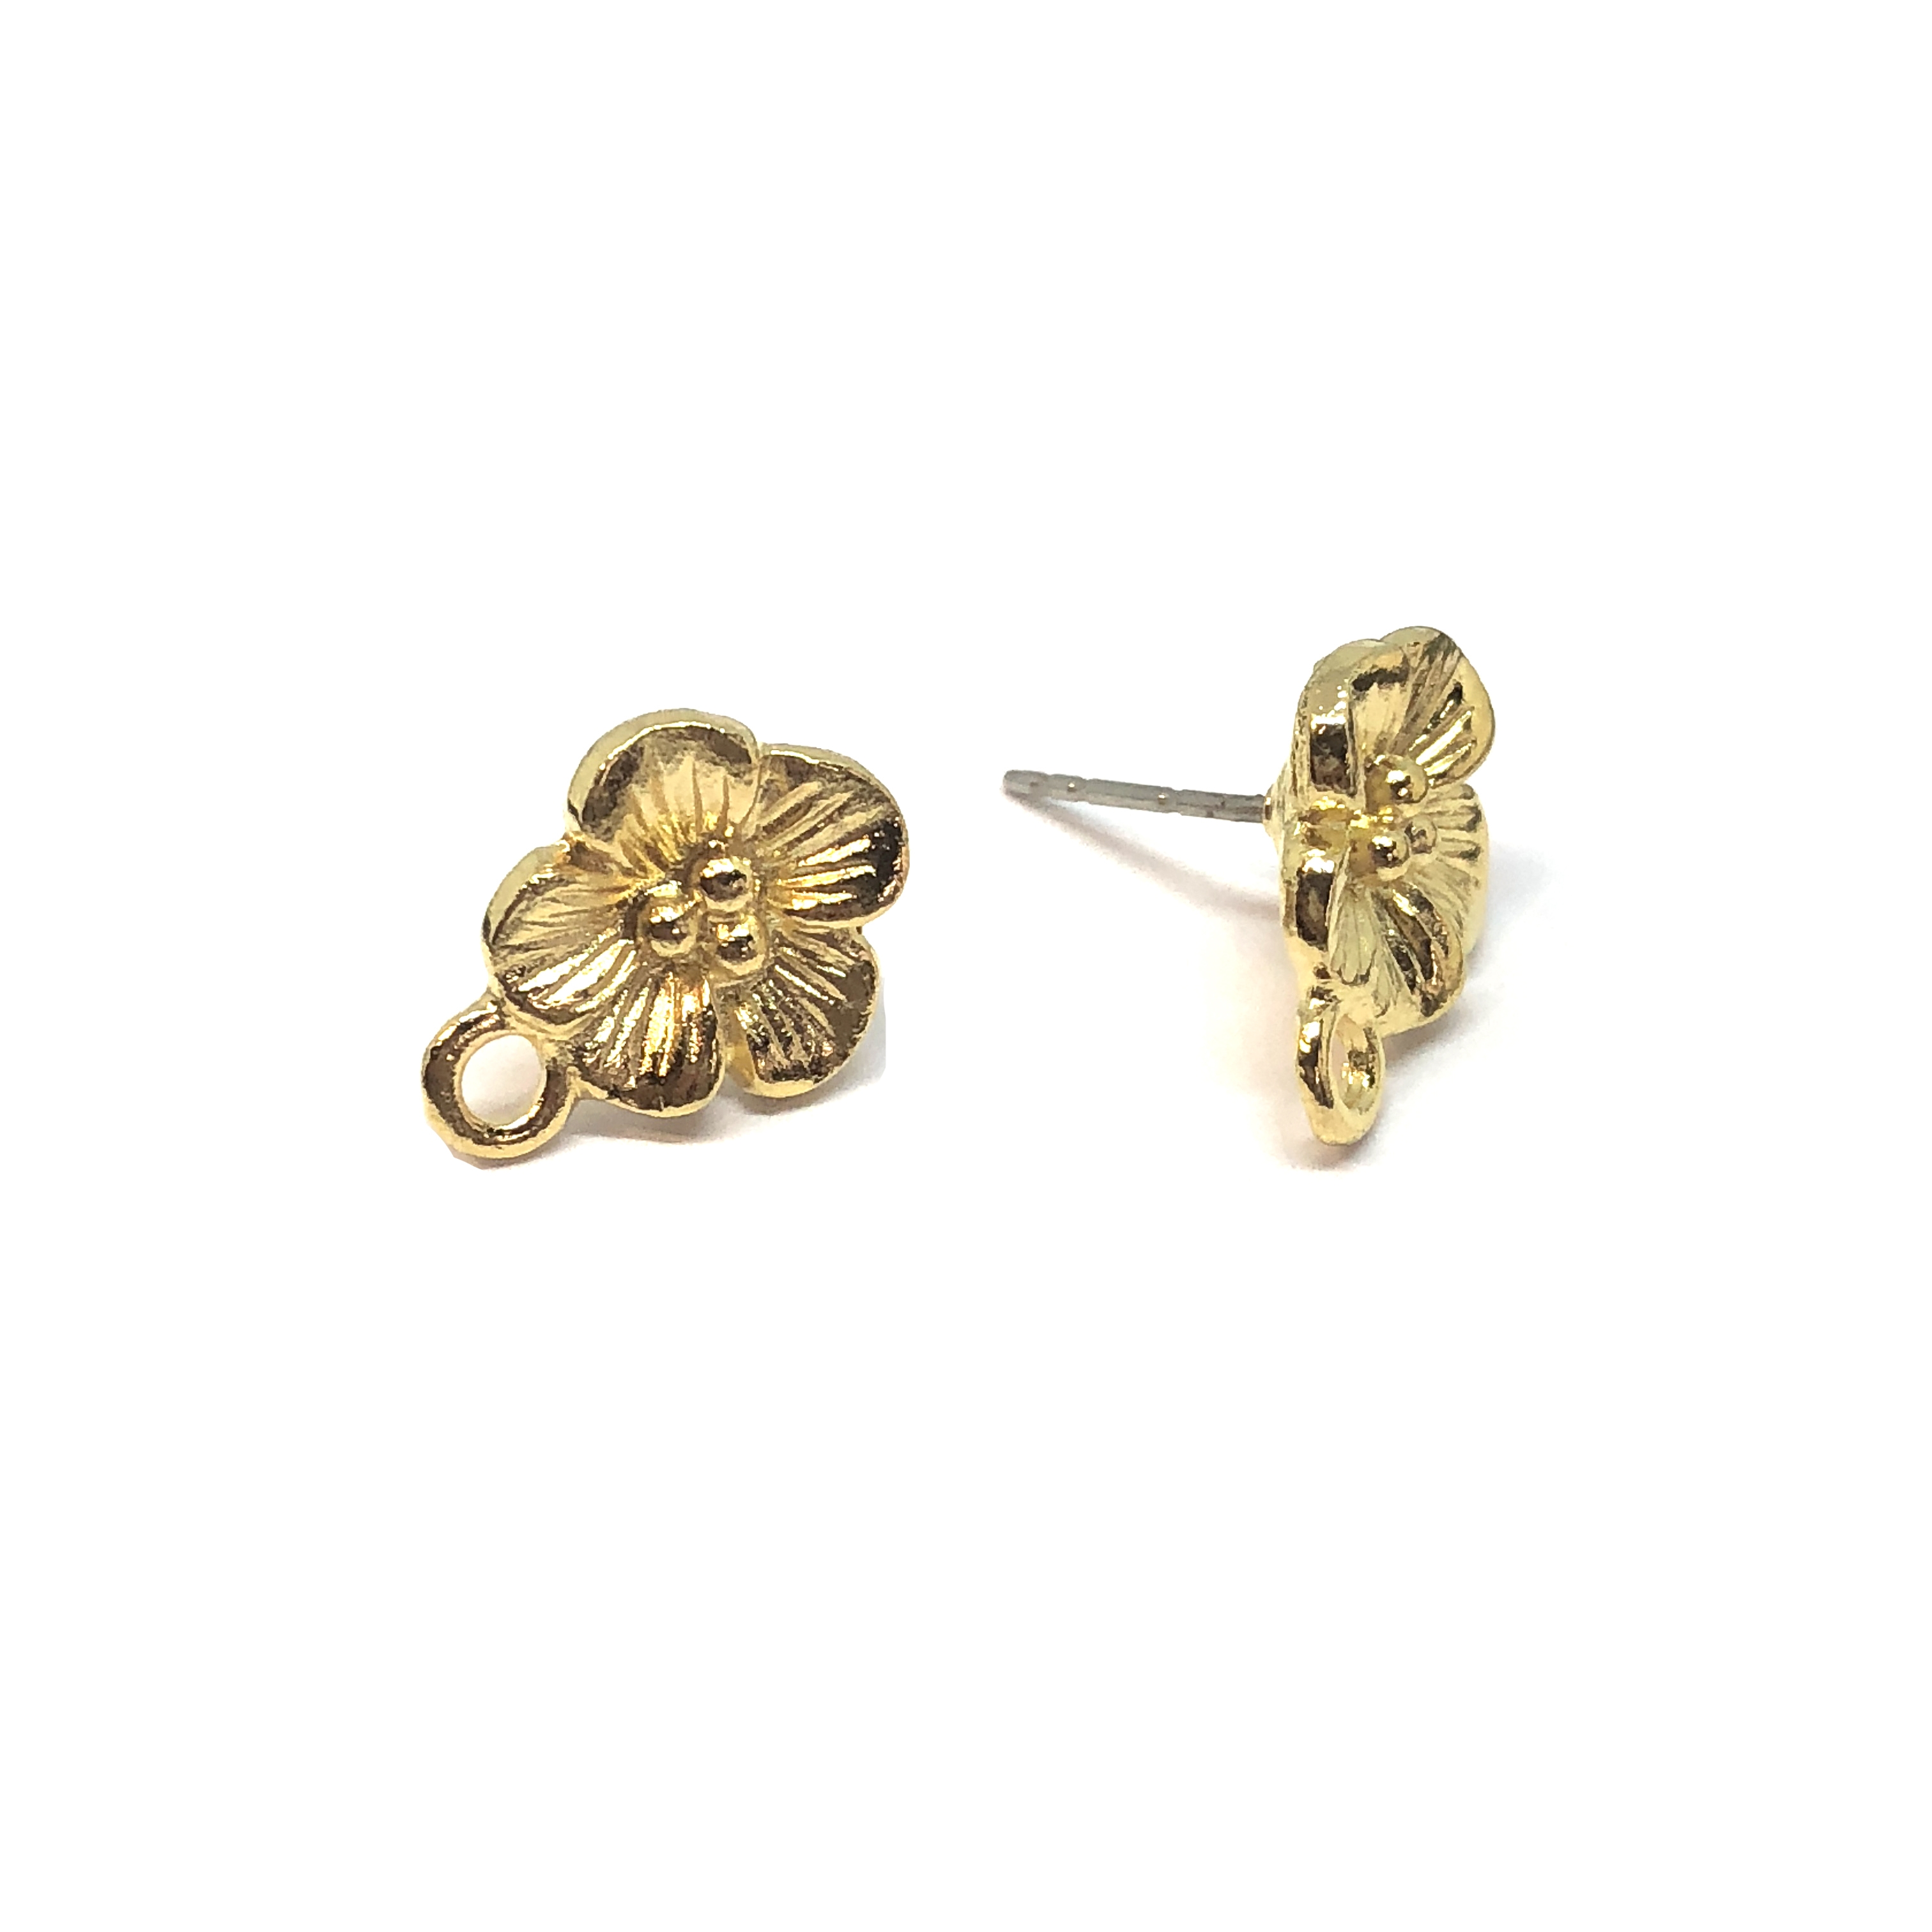 flower earring stud with accent drop, 22K gold finish pewter, five petal earrings, accent drop, vintage style, B'sue by 1928, lead free pewter castings, cast pewter jewelry findings, US made, 1928 Company, B'sue Boutiques, gold, 15x11mm, 08551